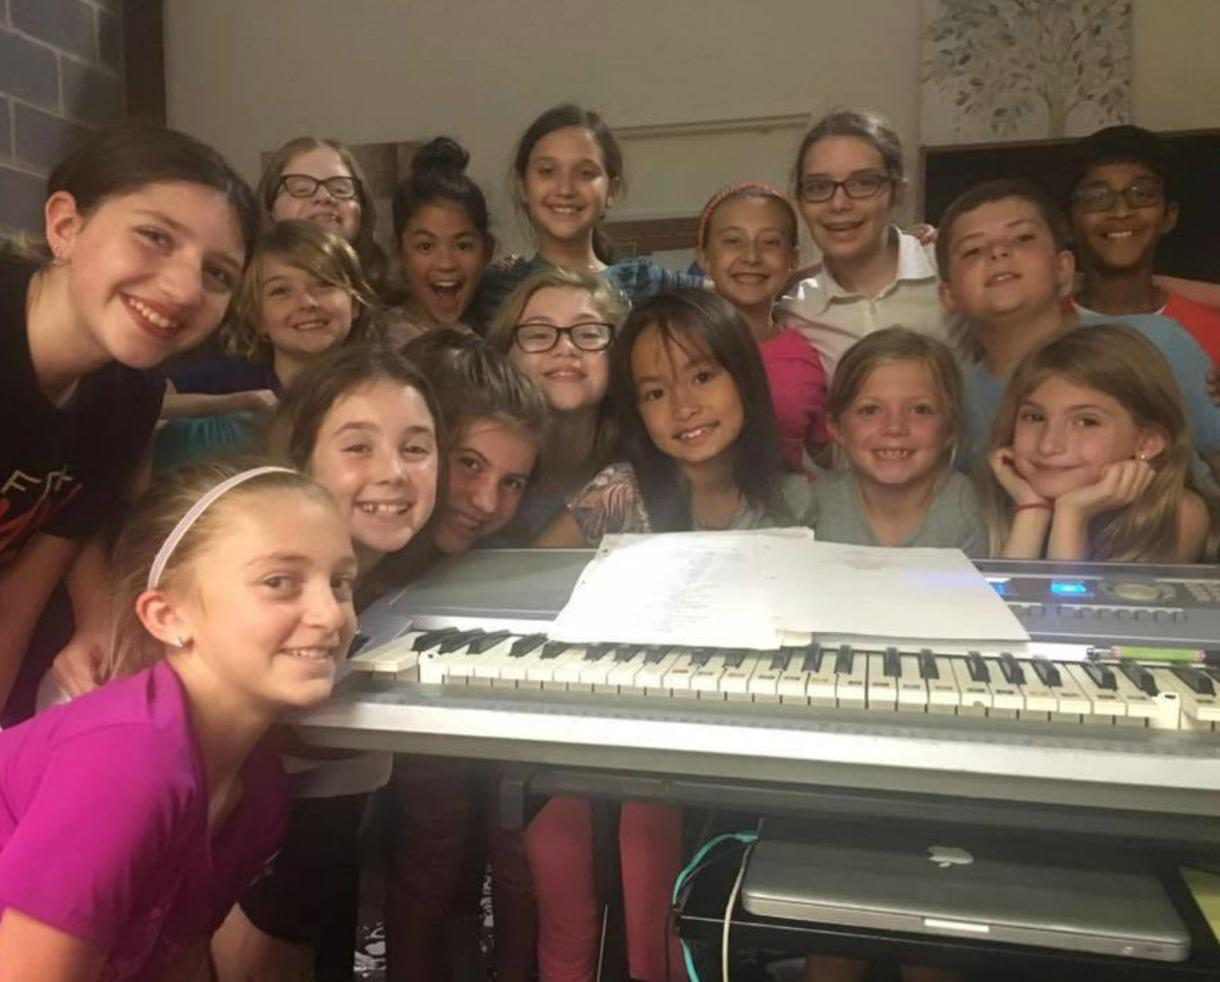 $200 for Theaterpalooza Musical Theatre Production Camp for Ages 4-15 - Ashburn or Leesburg ($100 Off)